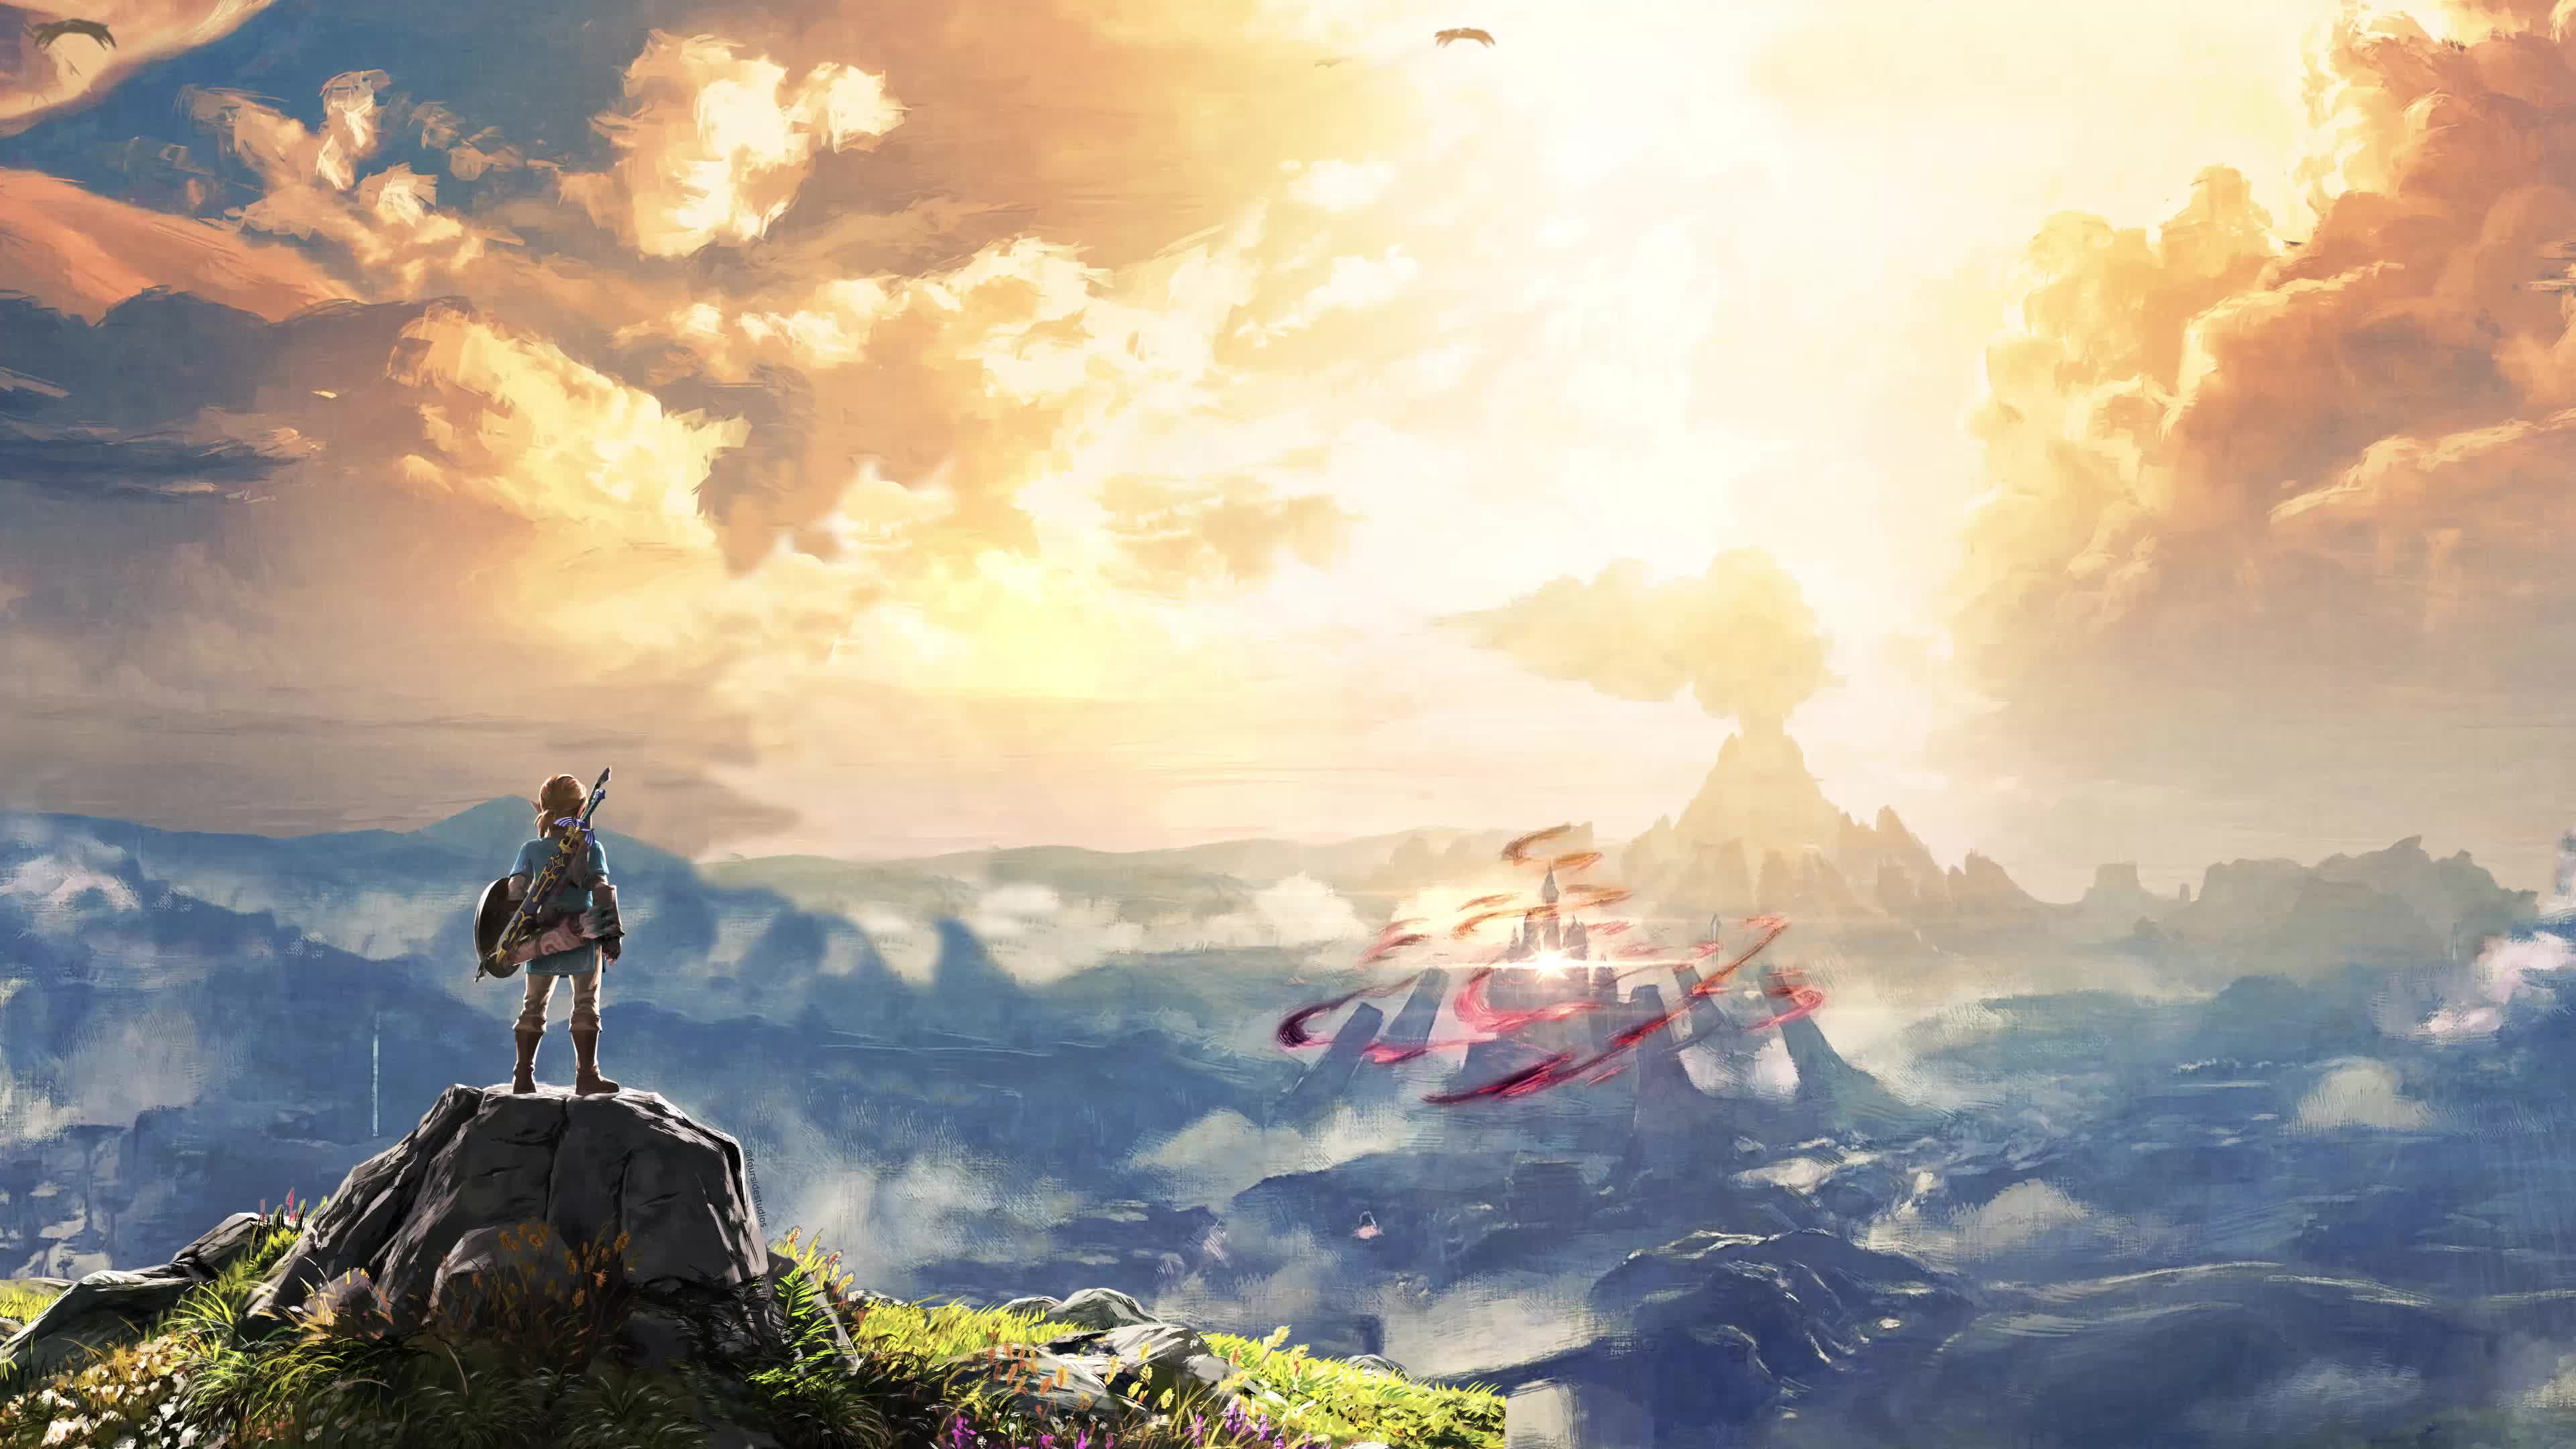 Legend Of Zelda Breath Of The Wild Animated Background Gif By